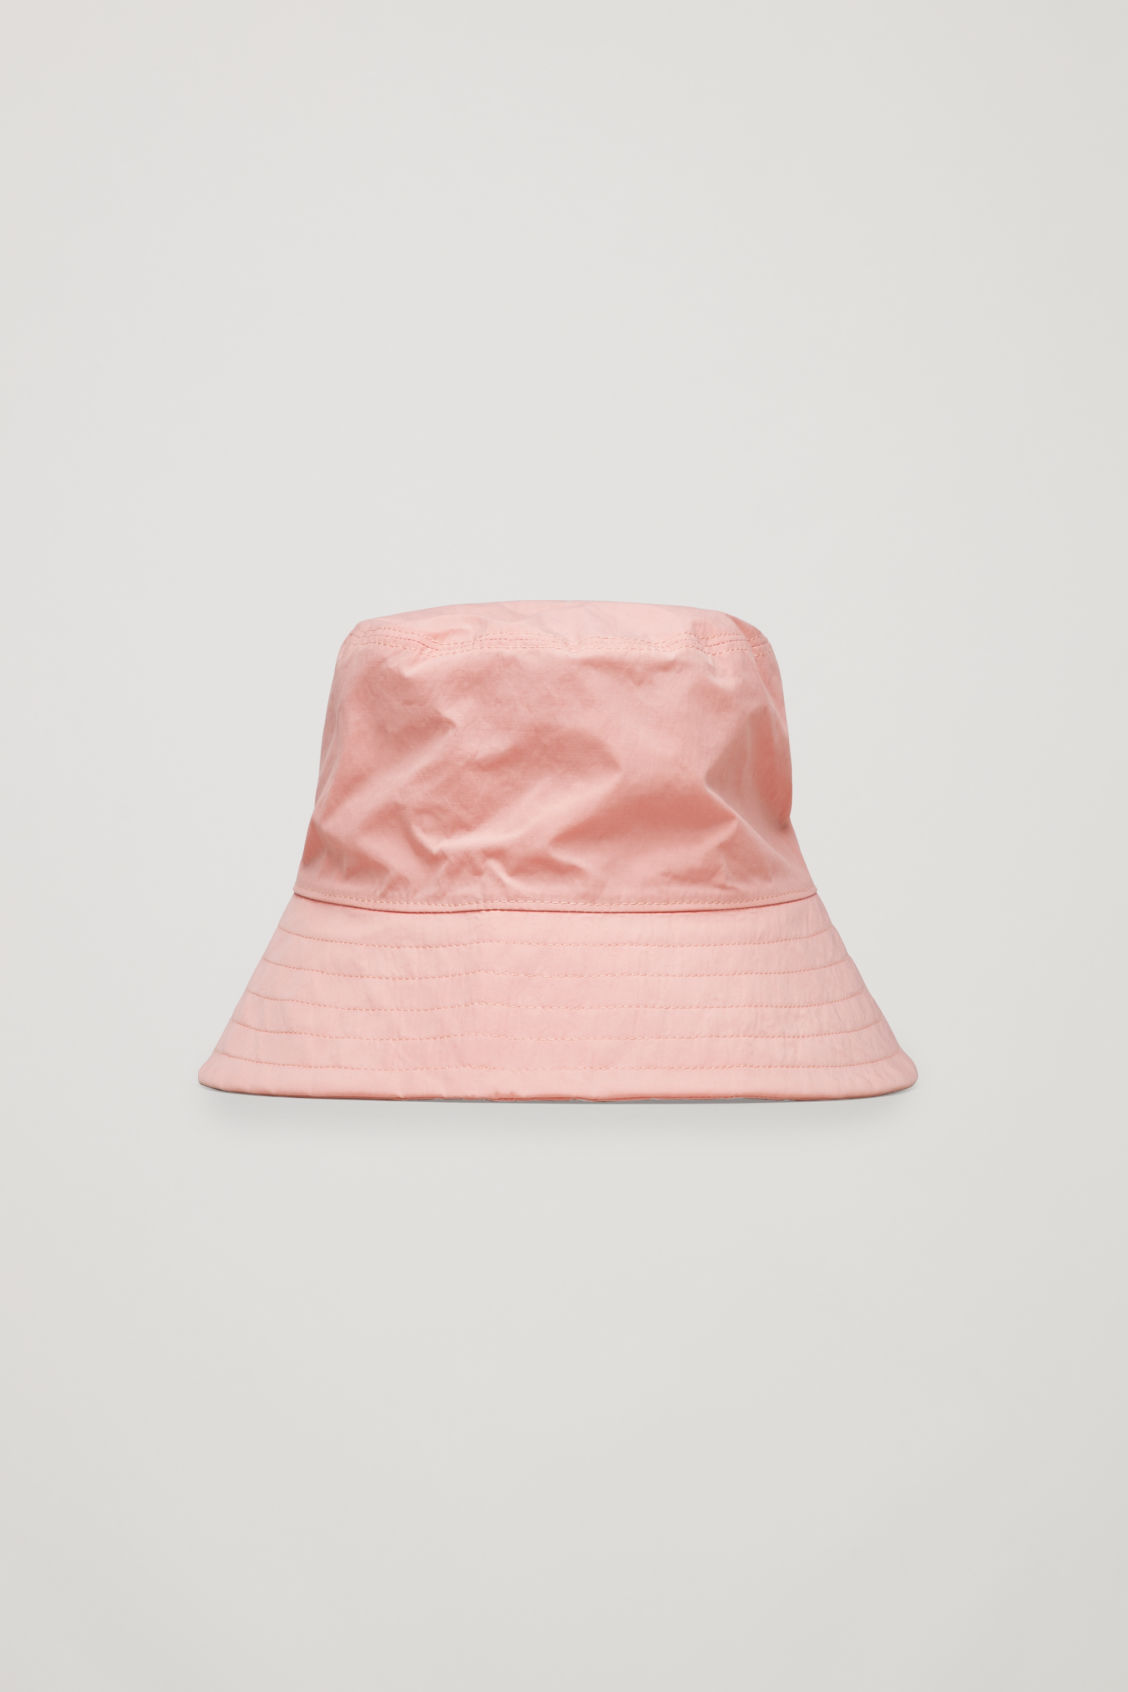 Cos Canvas Bucket Hat In Pink  ea612eecdcb